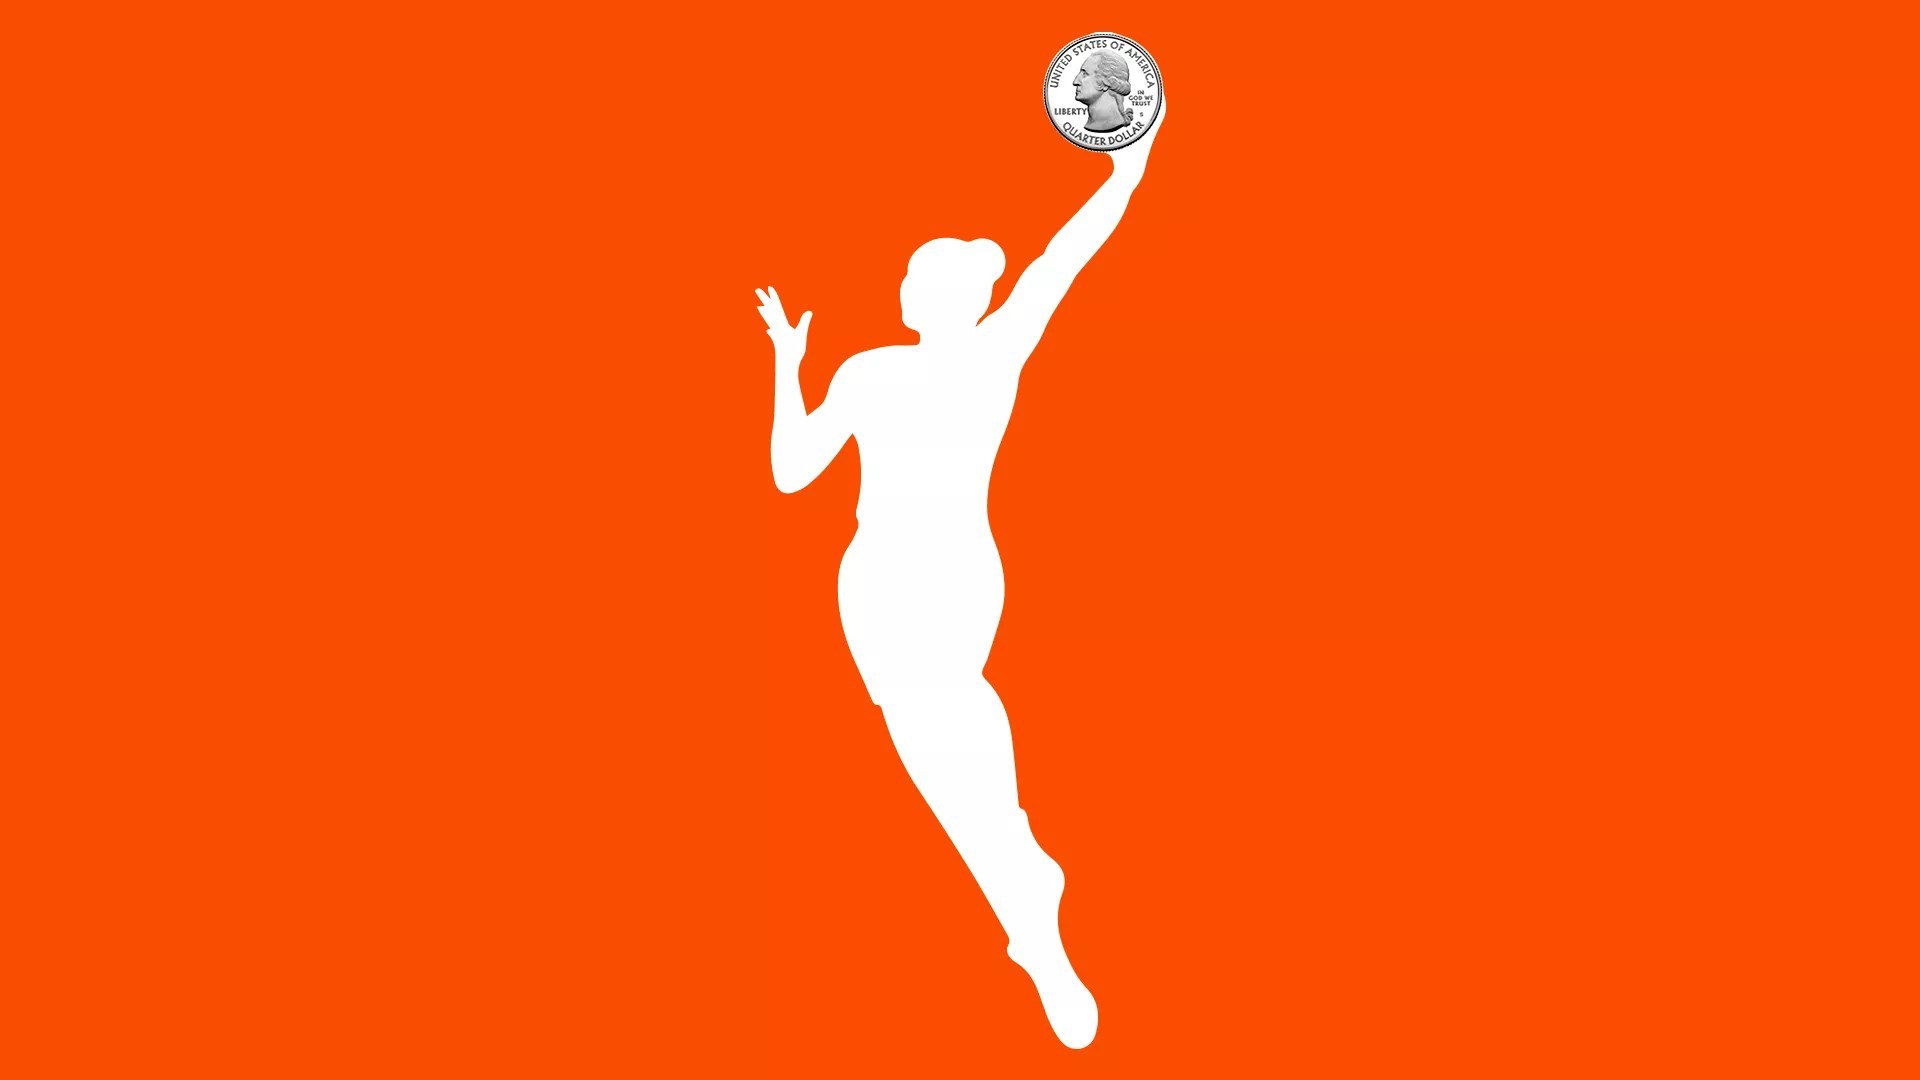 WNBA logo with a quarter in place of the basketball ball